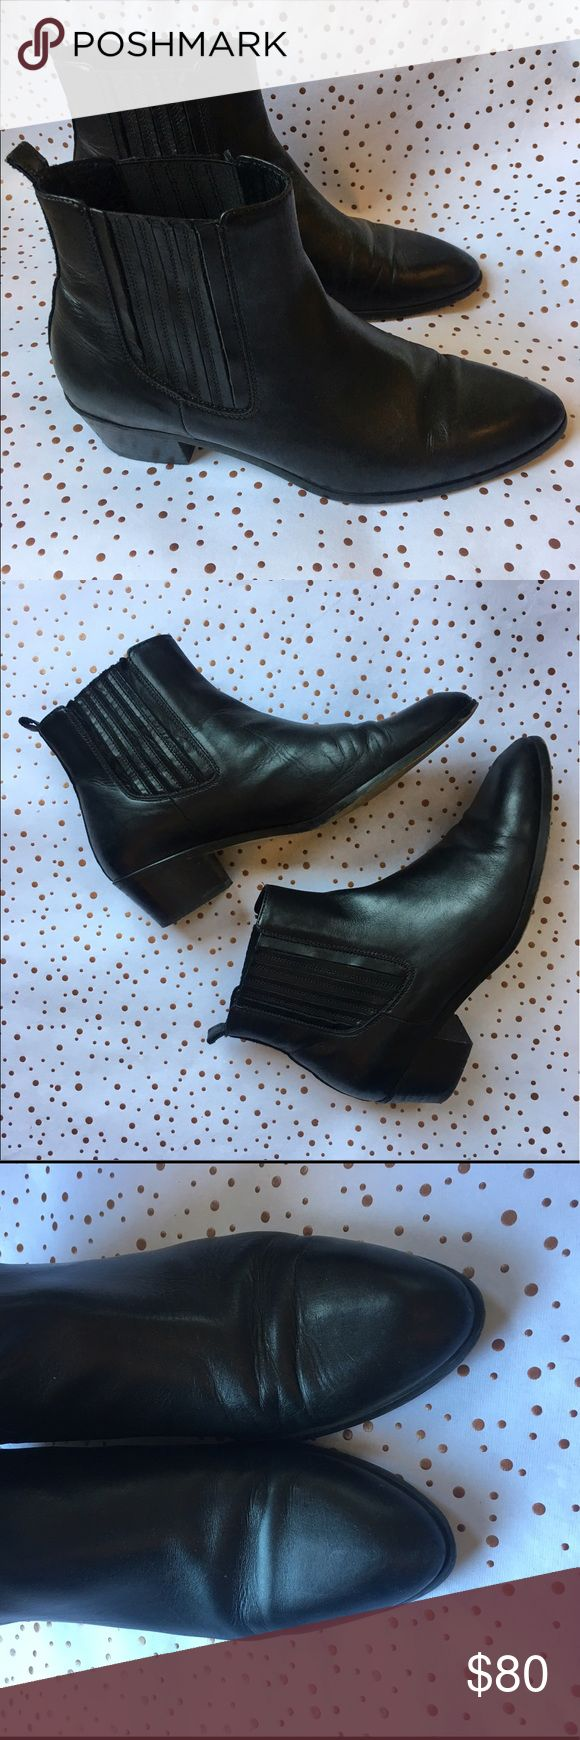 J.Crew Black Leather Chelsea Boots 10 1/2 Gorgeous pair of classic black leather Chelsea-style pull on booties from jcrew. These were always going OOS on the site when they were available because they were so popular. Soft leather, very sturdy and well made with a perfect slightly-pointed toe. Super chic! True 10 1/2 size. See photos for wear at the toebox and sides. J. Crew Shoes Ankle Boots & Booties